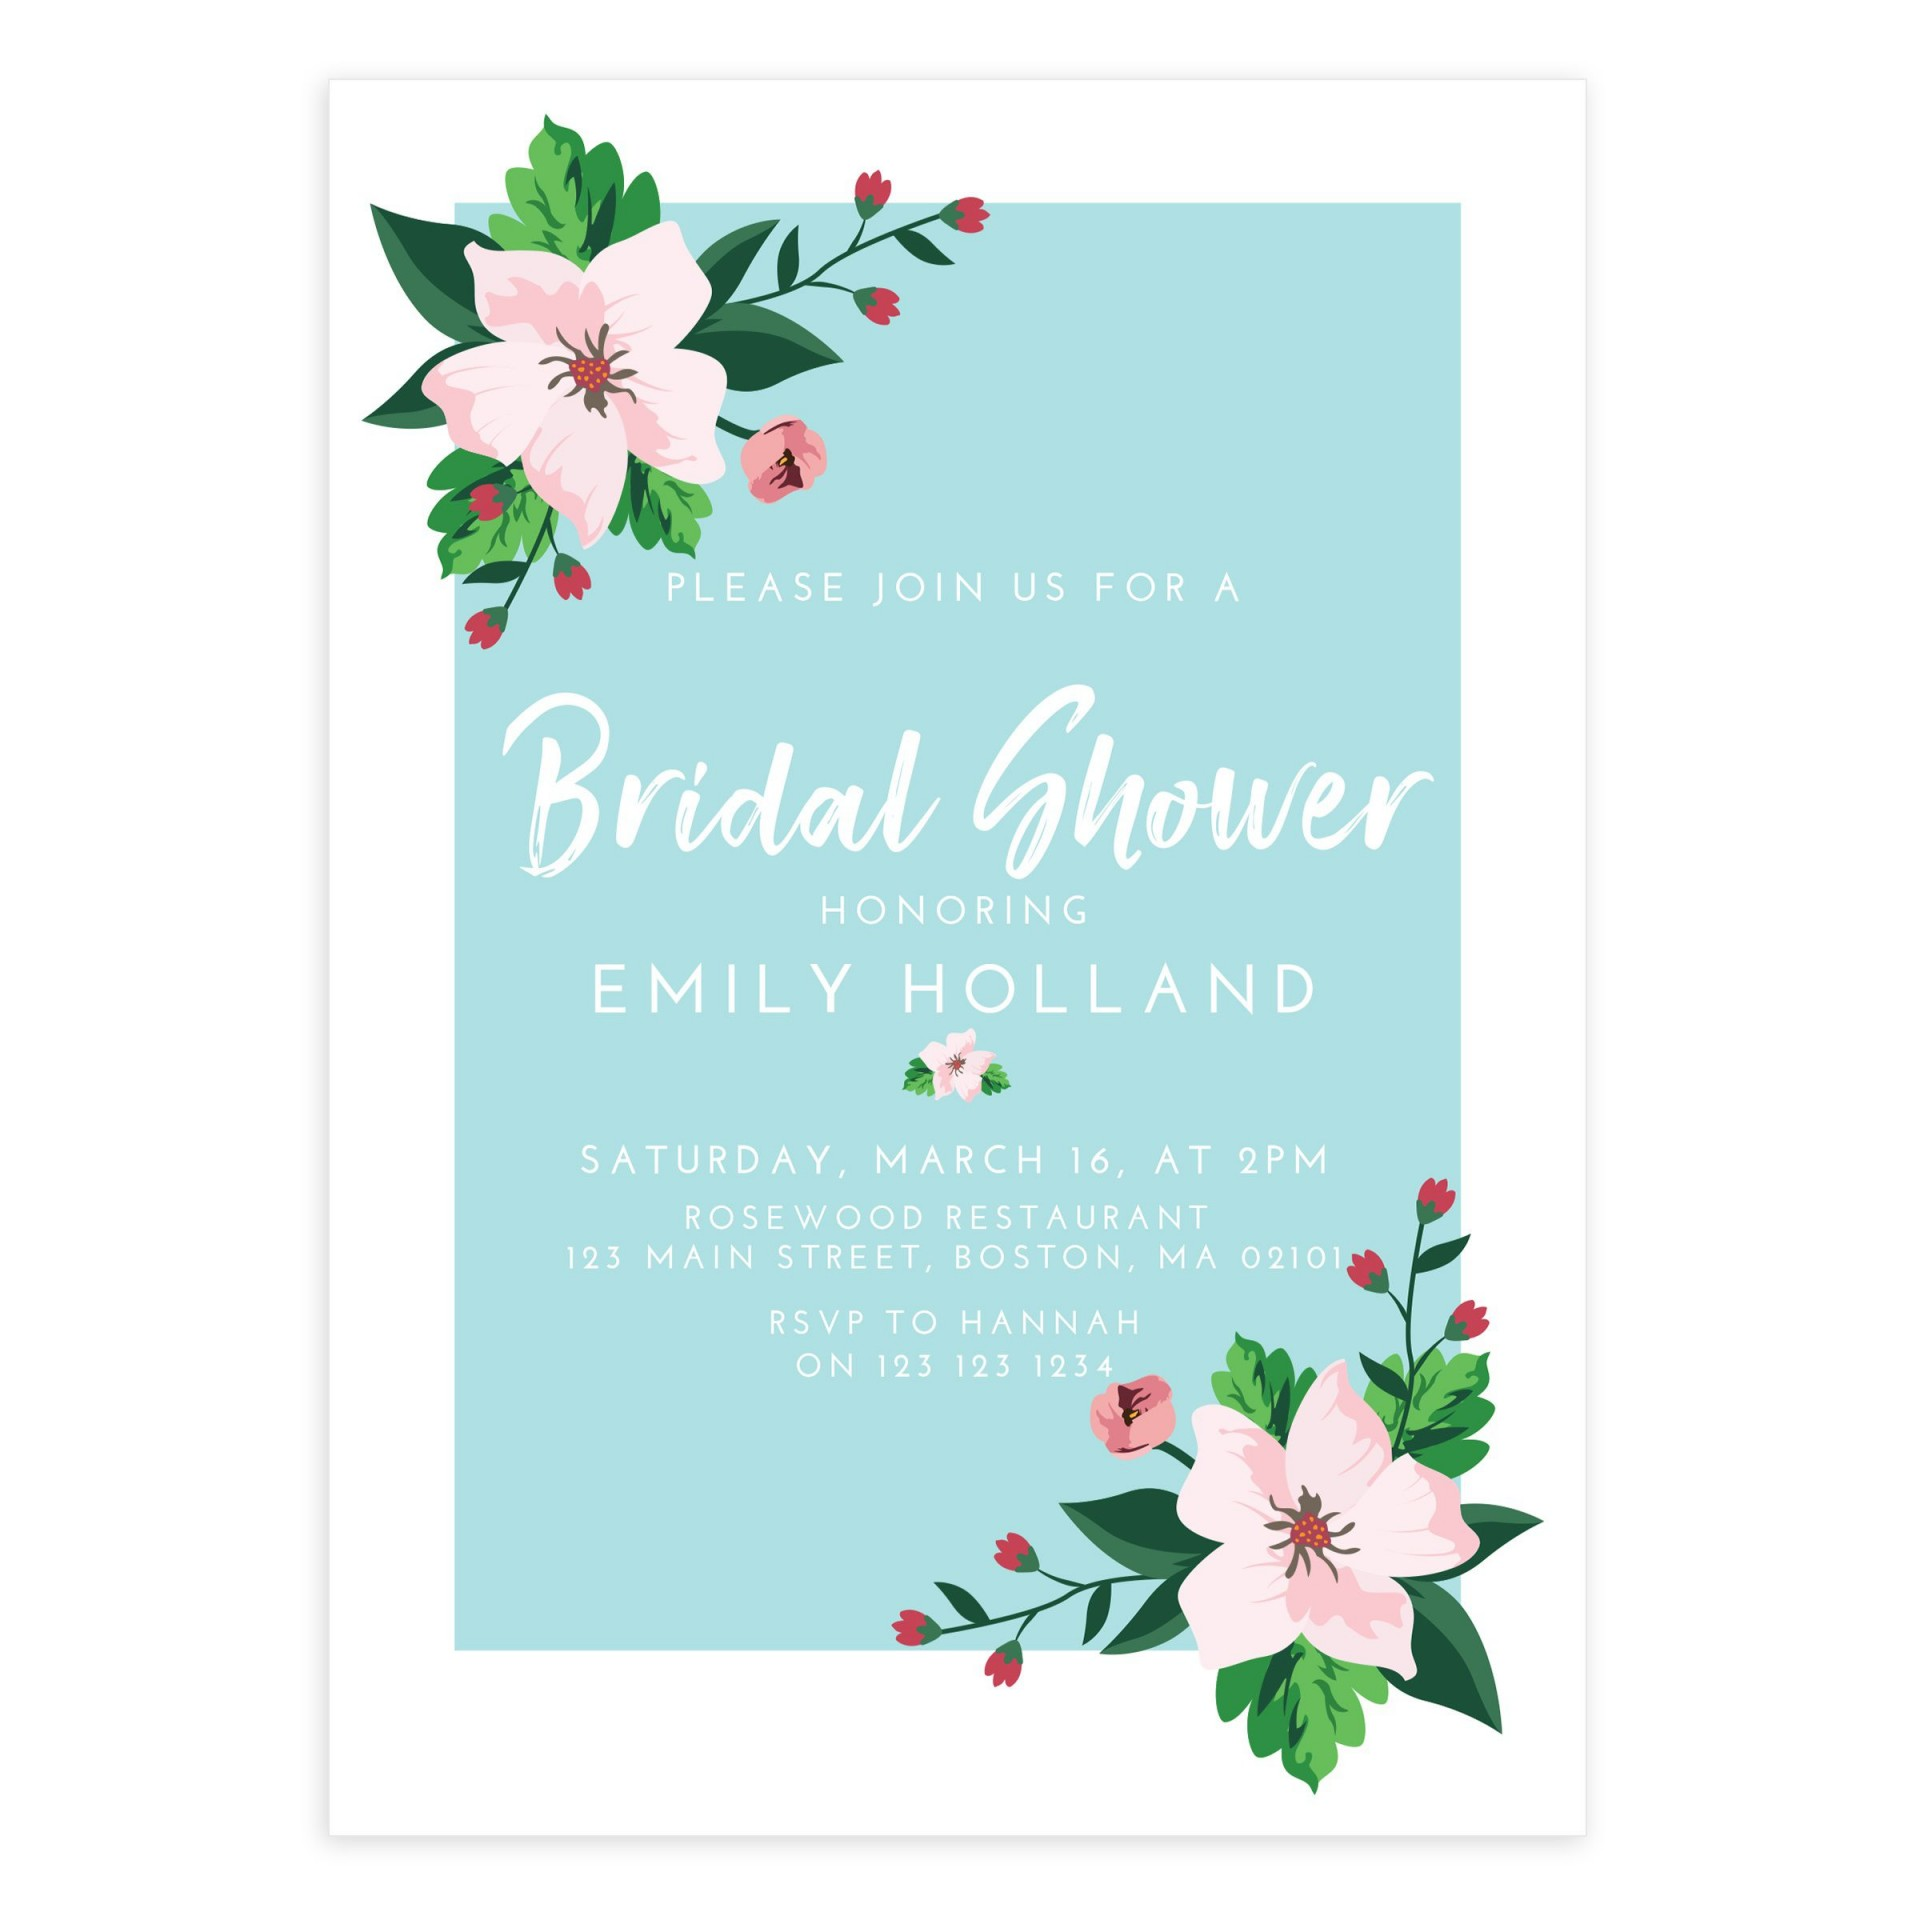 009 Formidable Wedding Shower Invitation Template Sample  Templates Bridal Pinterest Microsoft Word Free For1920